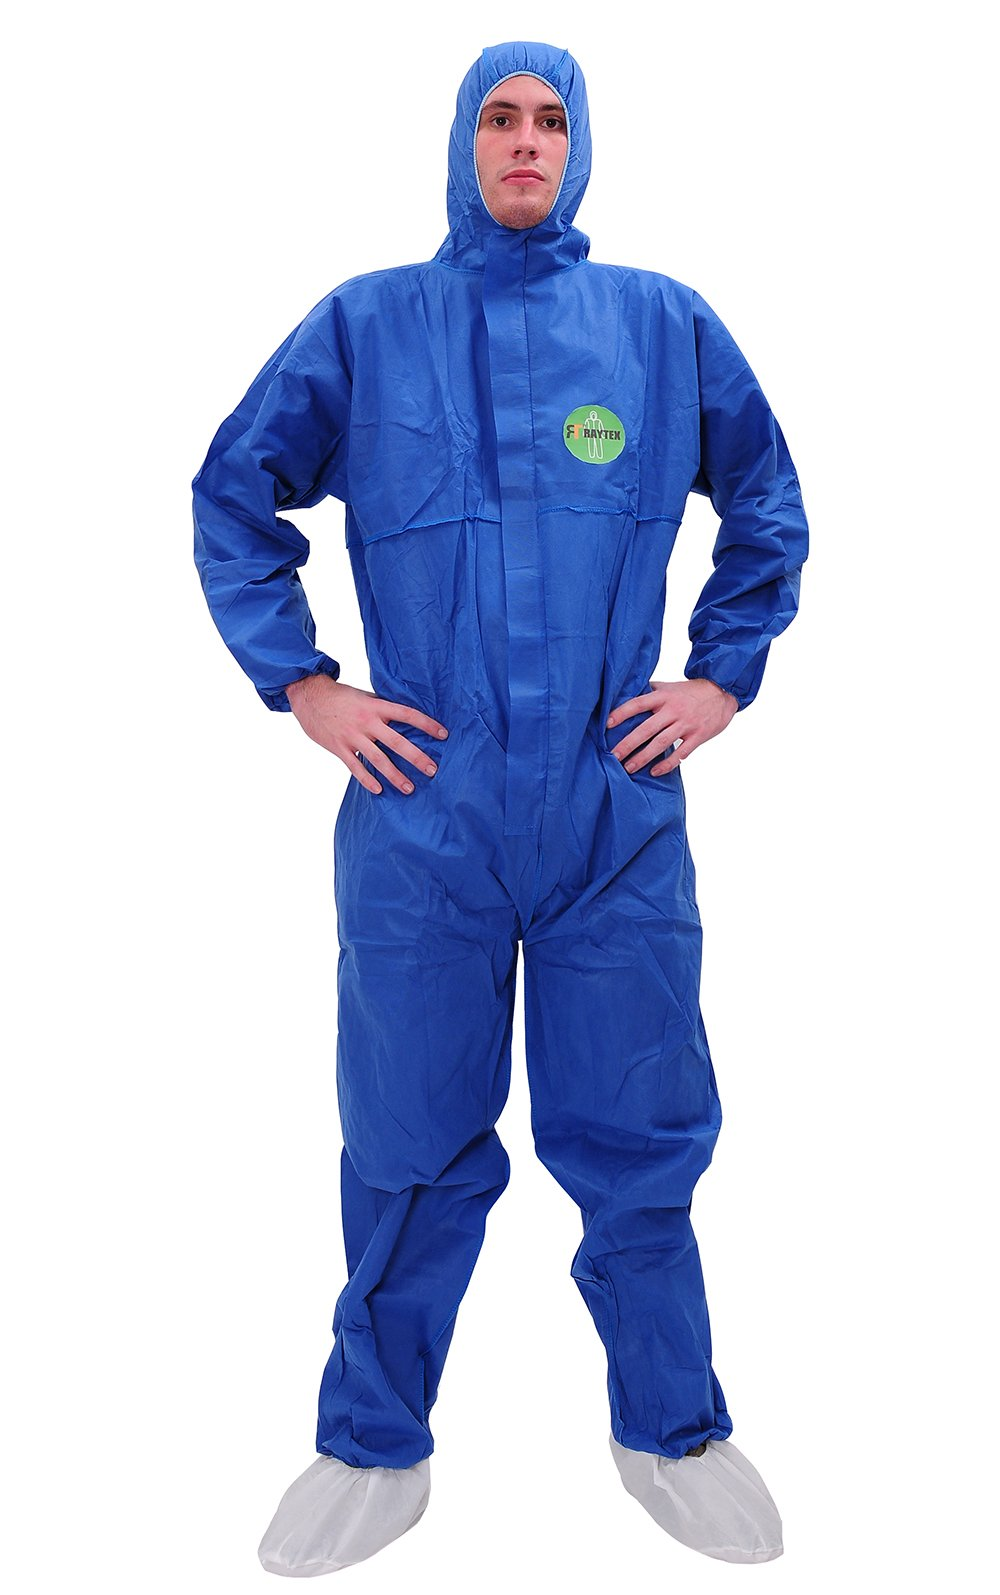 Raytex 30303 SMS Disposable Coveralls Chemical Protective Suit Elastic at Cuffs, Ankles, Hood and Waist Zip Front Serged Seams for Spray Paint Mechanic Work(Pack of 25) (X-Large, Blue)